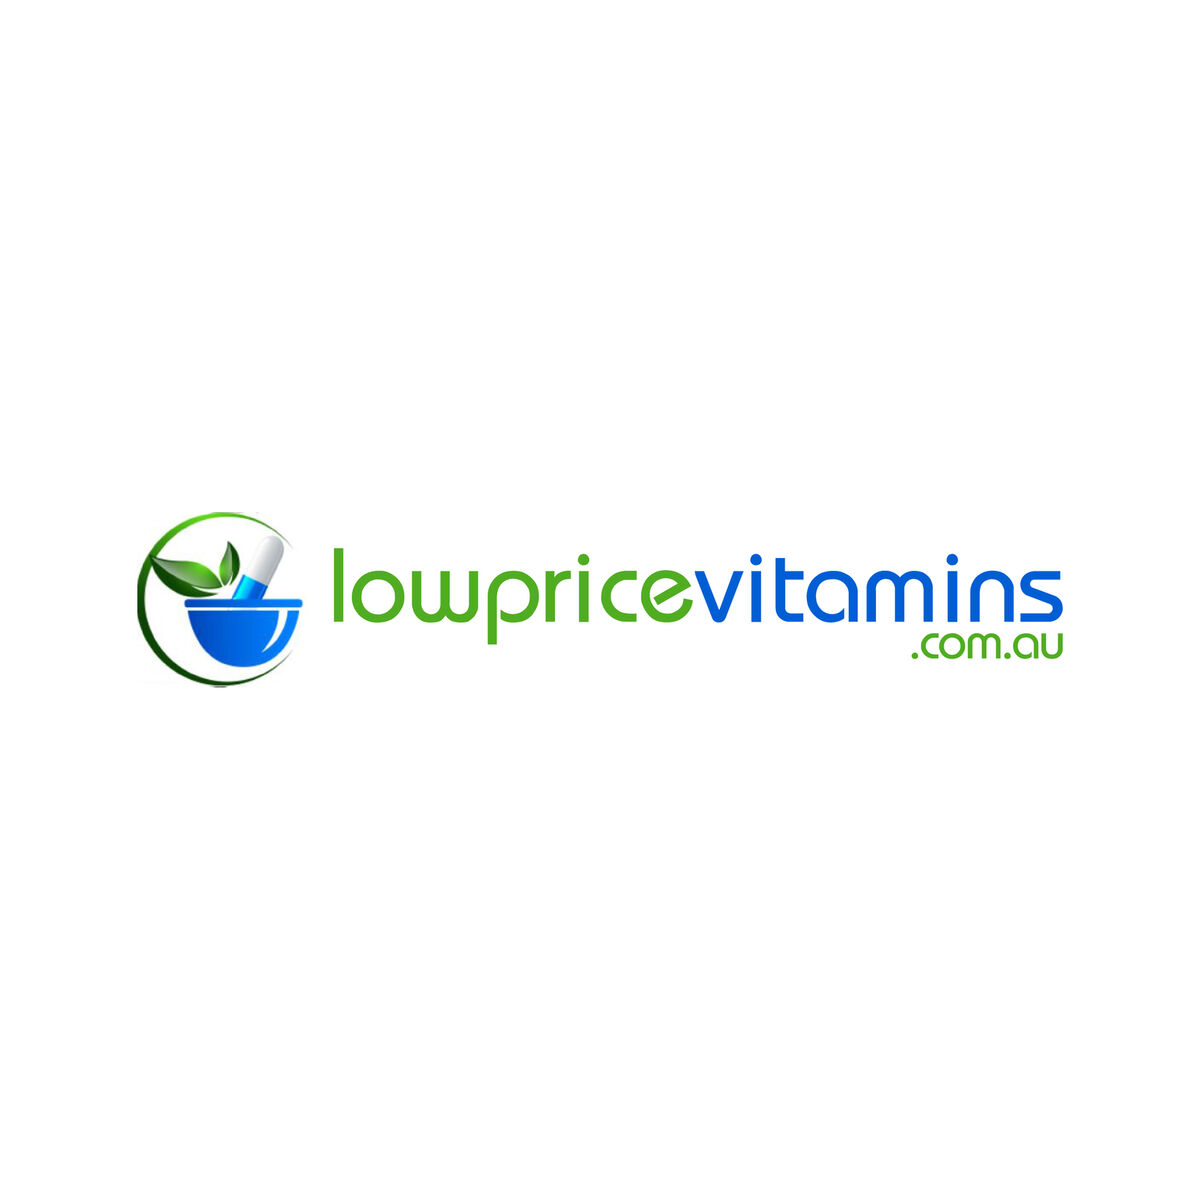 Low Price Vitamins